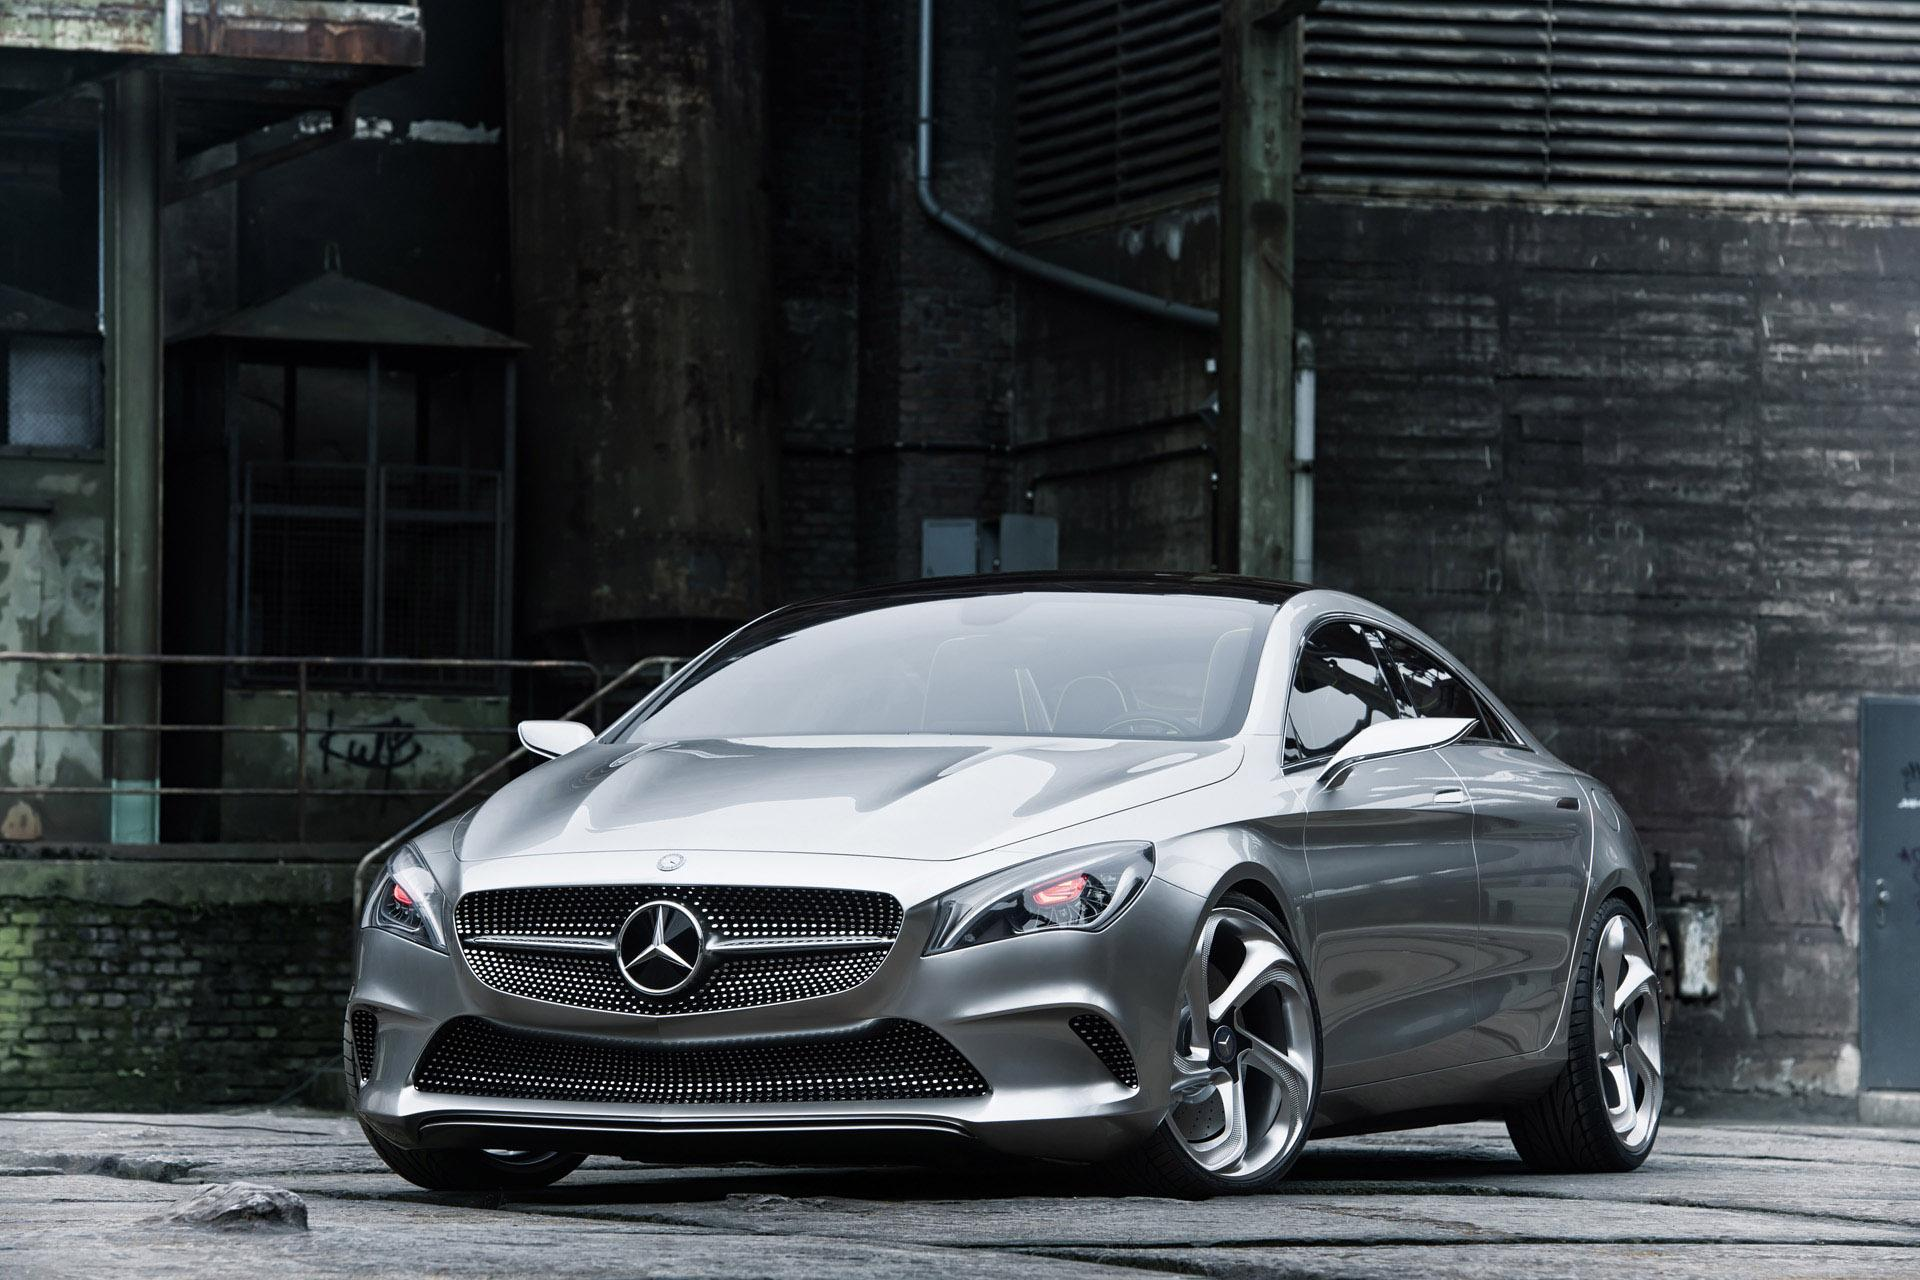 Mercedes-Benz Concept Style Coupe Photo Gallery - Autoblog